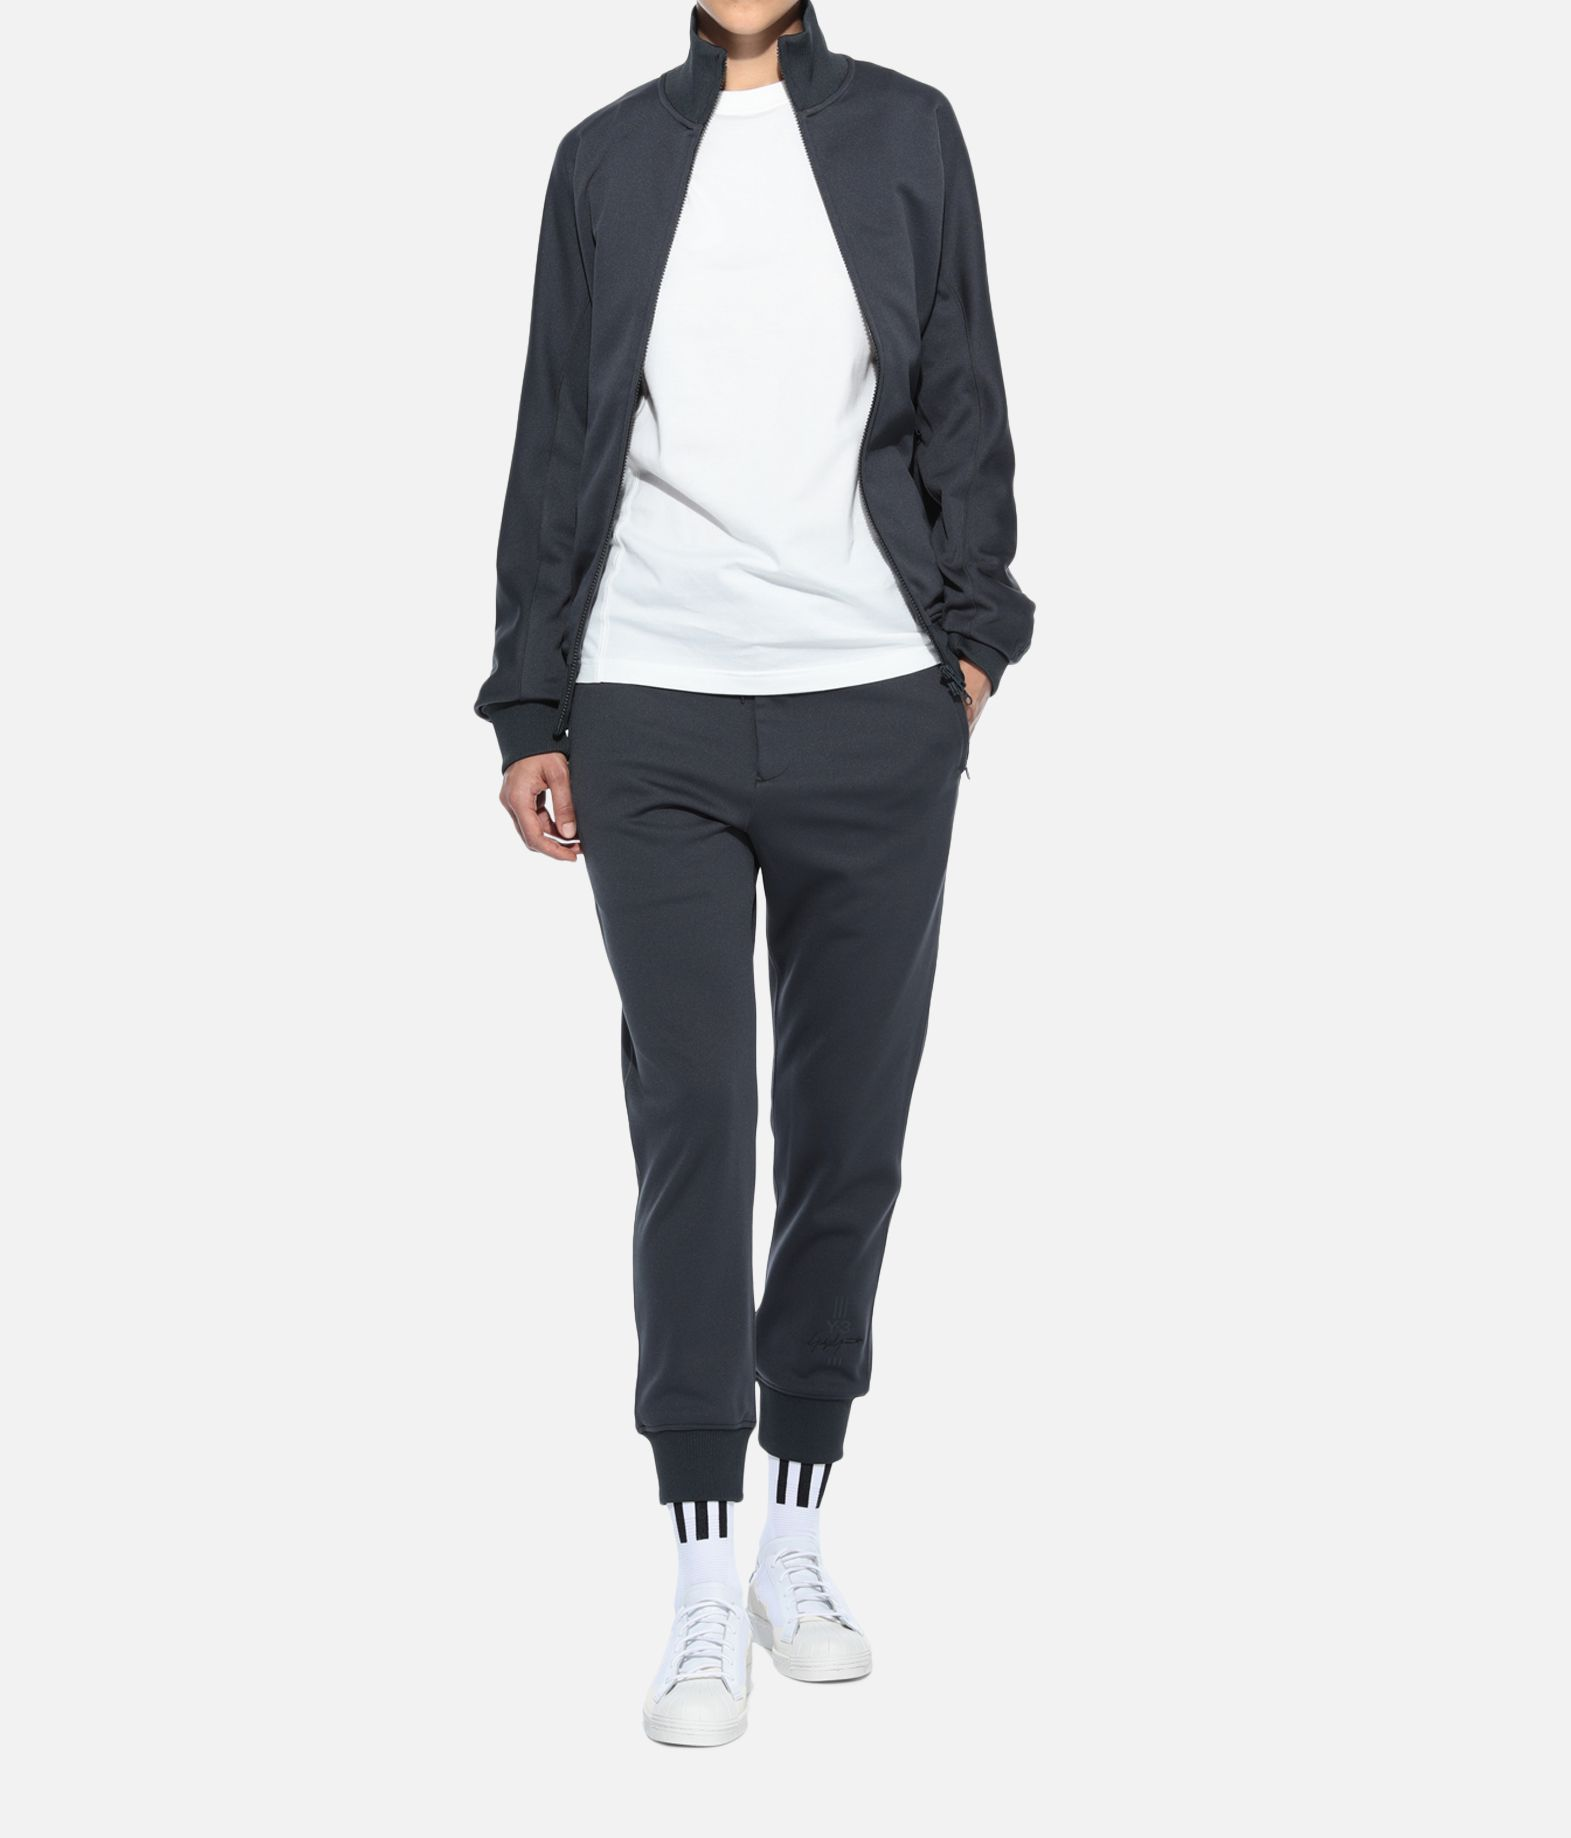 Y-3 Y-3 New Classic Track Jacket Jacket Woman a